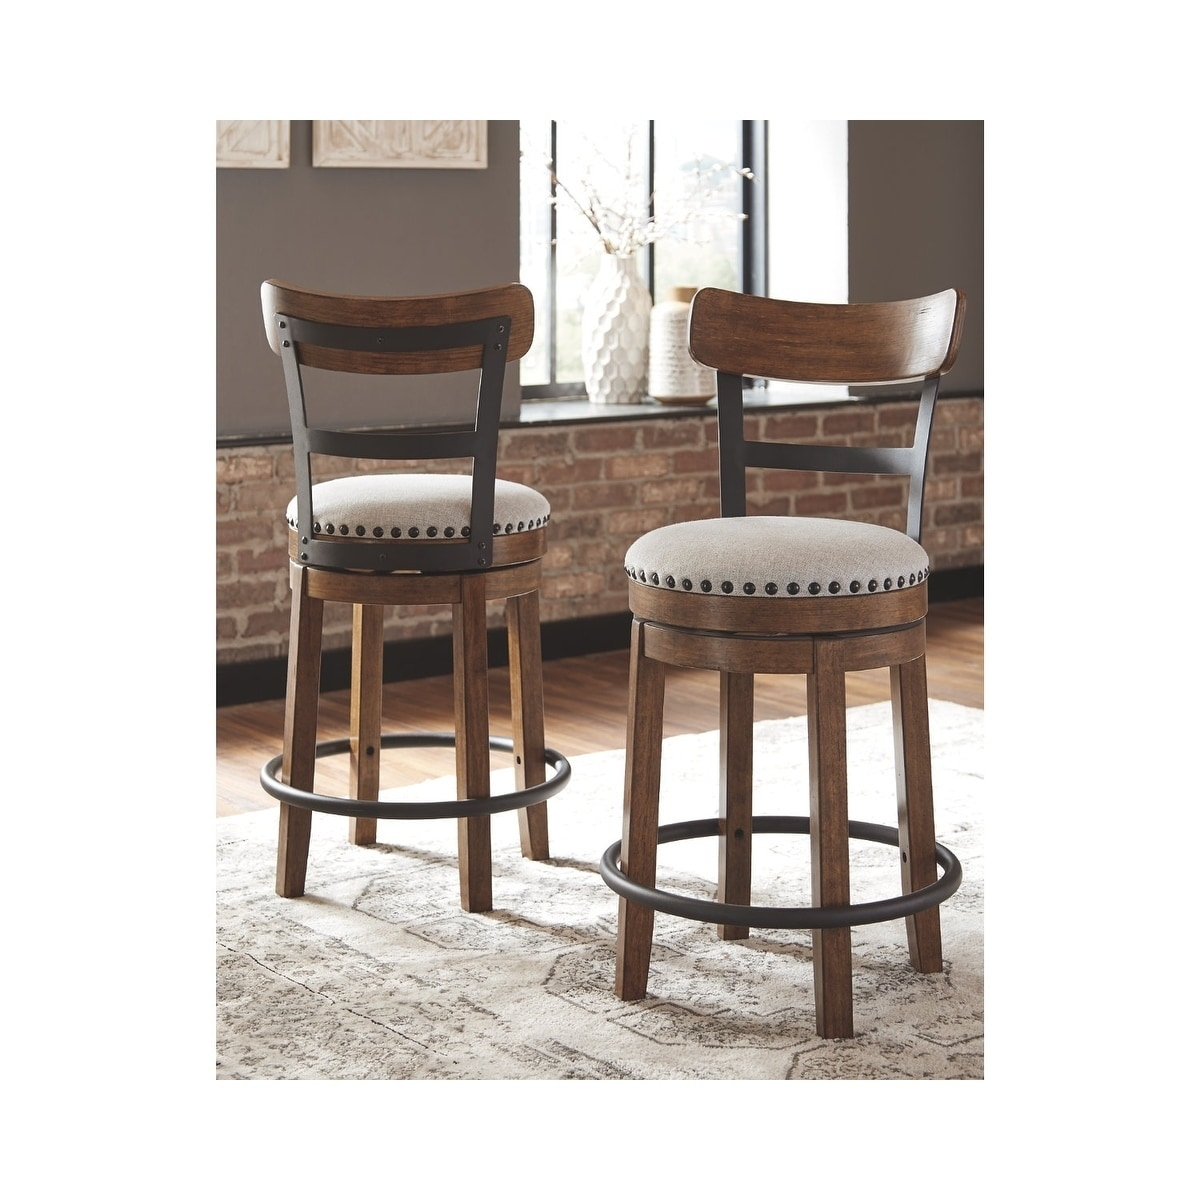 Signature Design by Ashley Valebeck Brown Counter-height Swivel Barstool